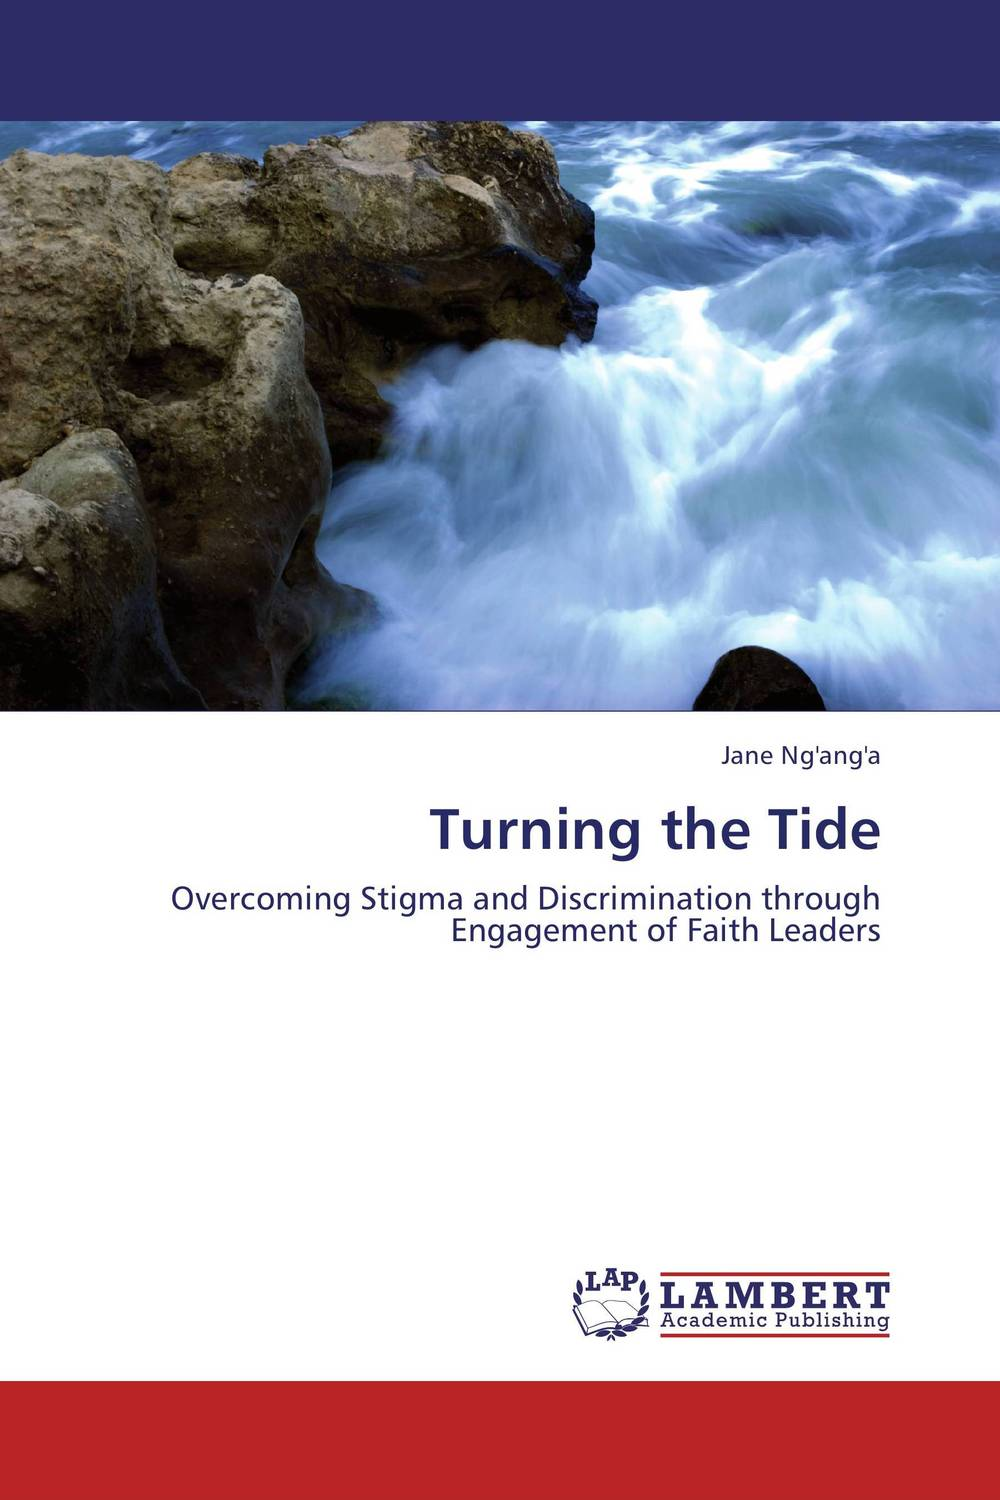 Turning the Tide walking through the path of faith